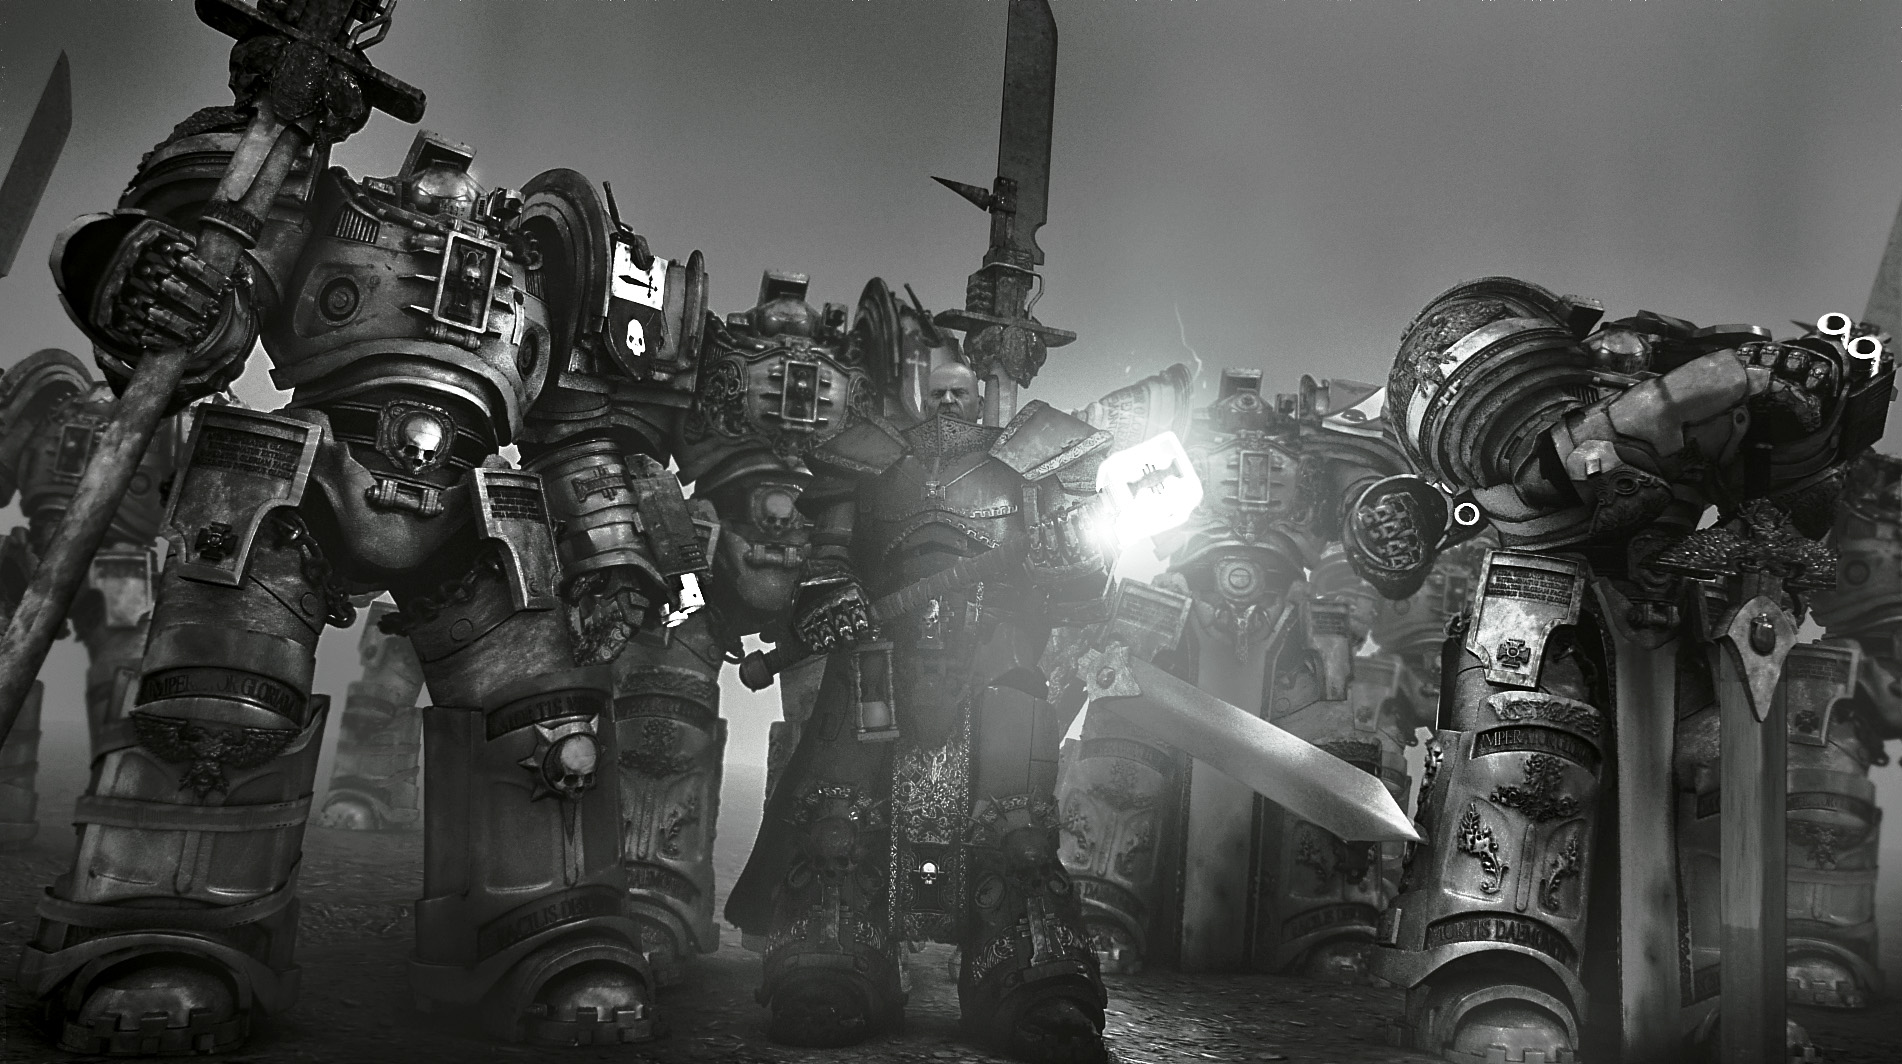 Warhammer 40k Movie Golfclub